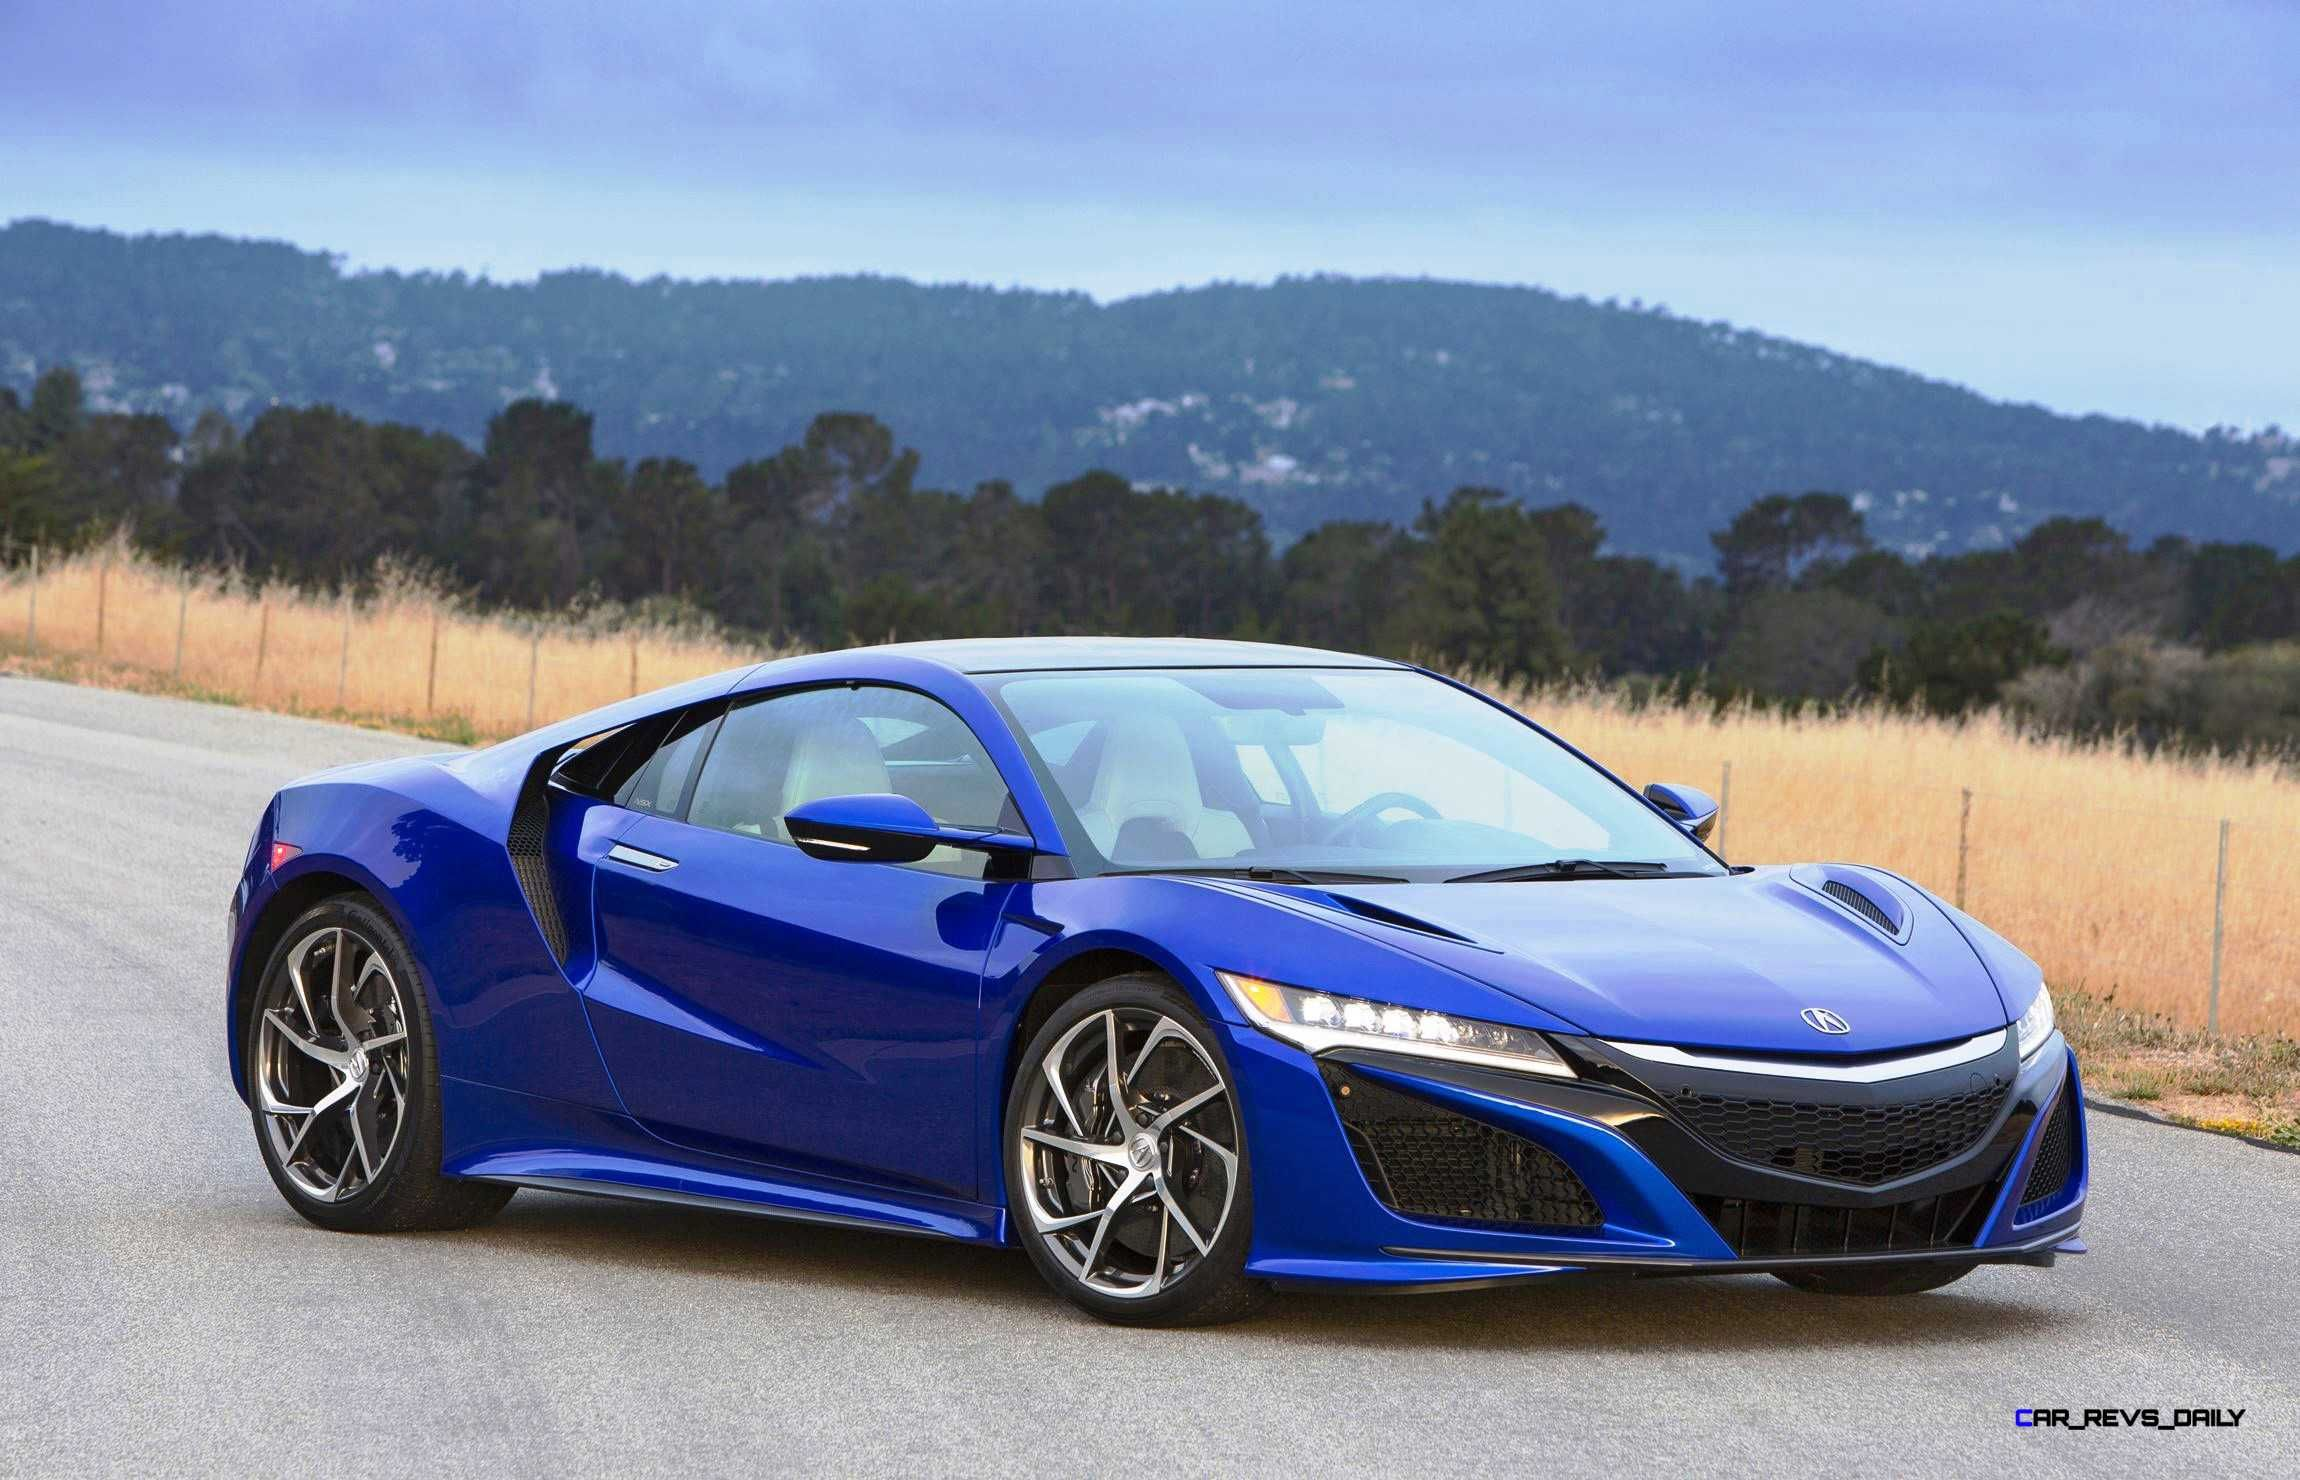 New Acura NSX in Nouvelle Blue Acura nsx, Nsx, 2017